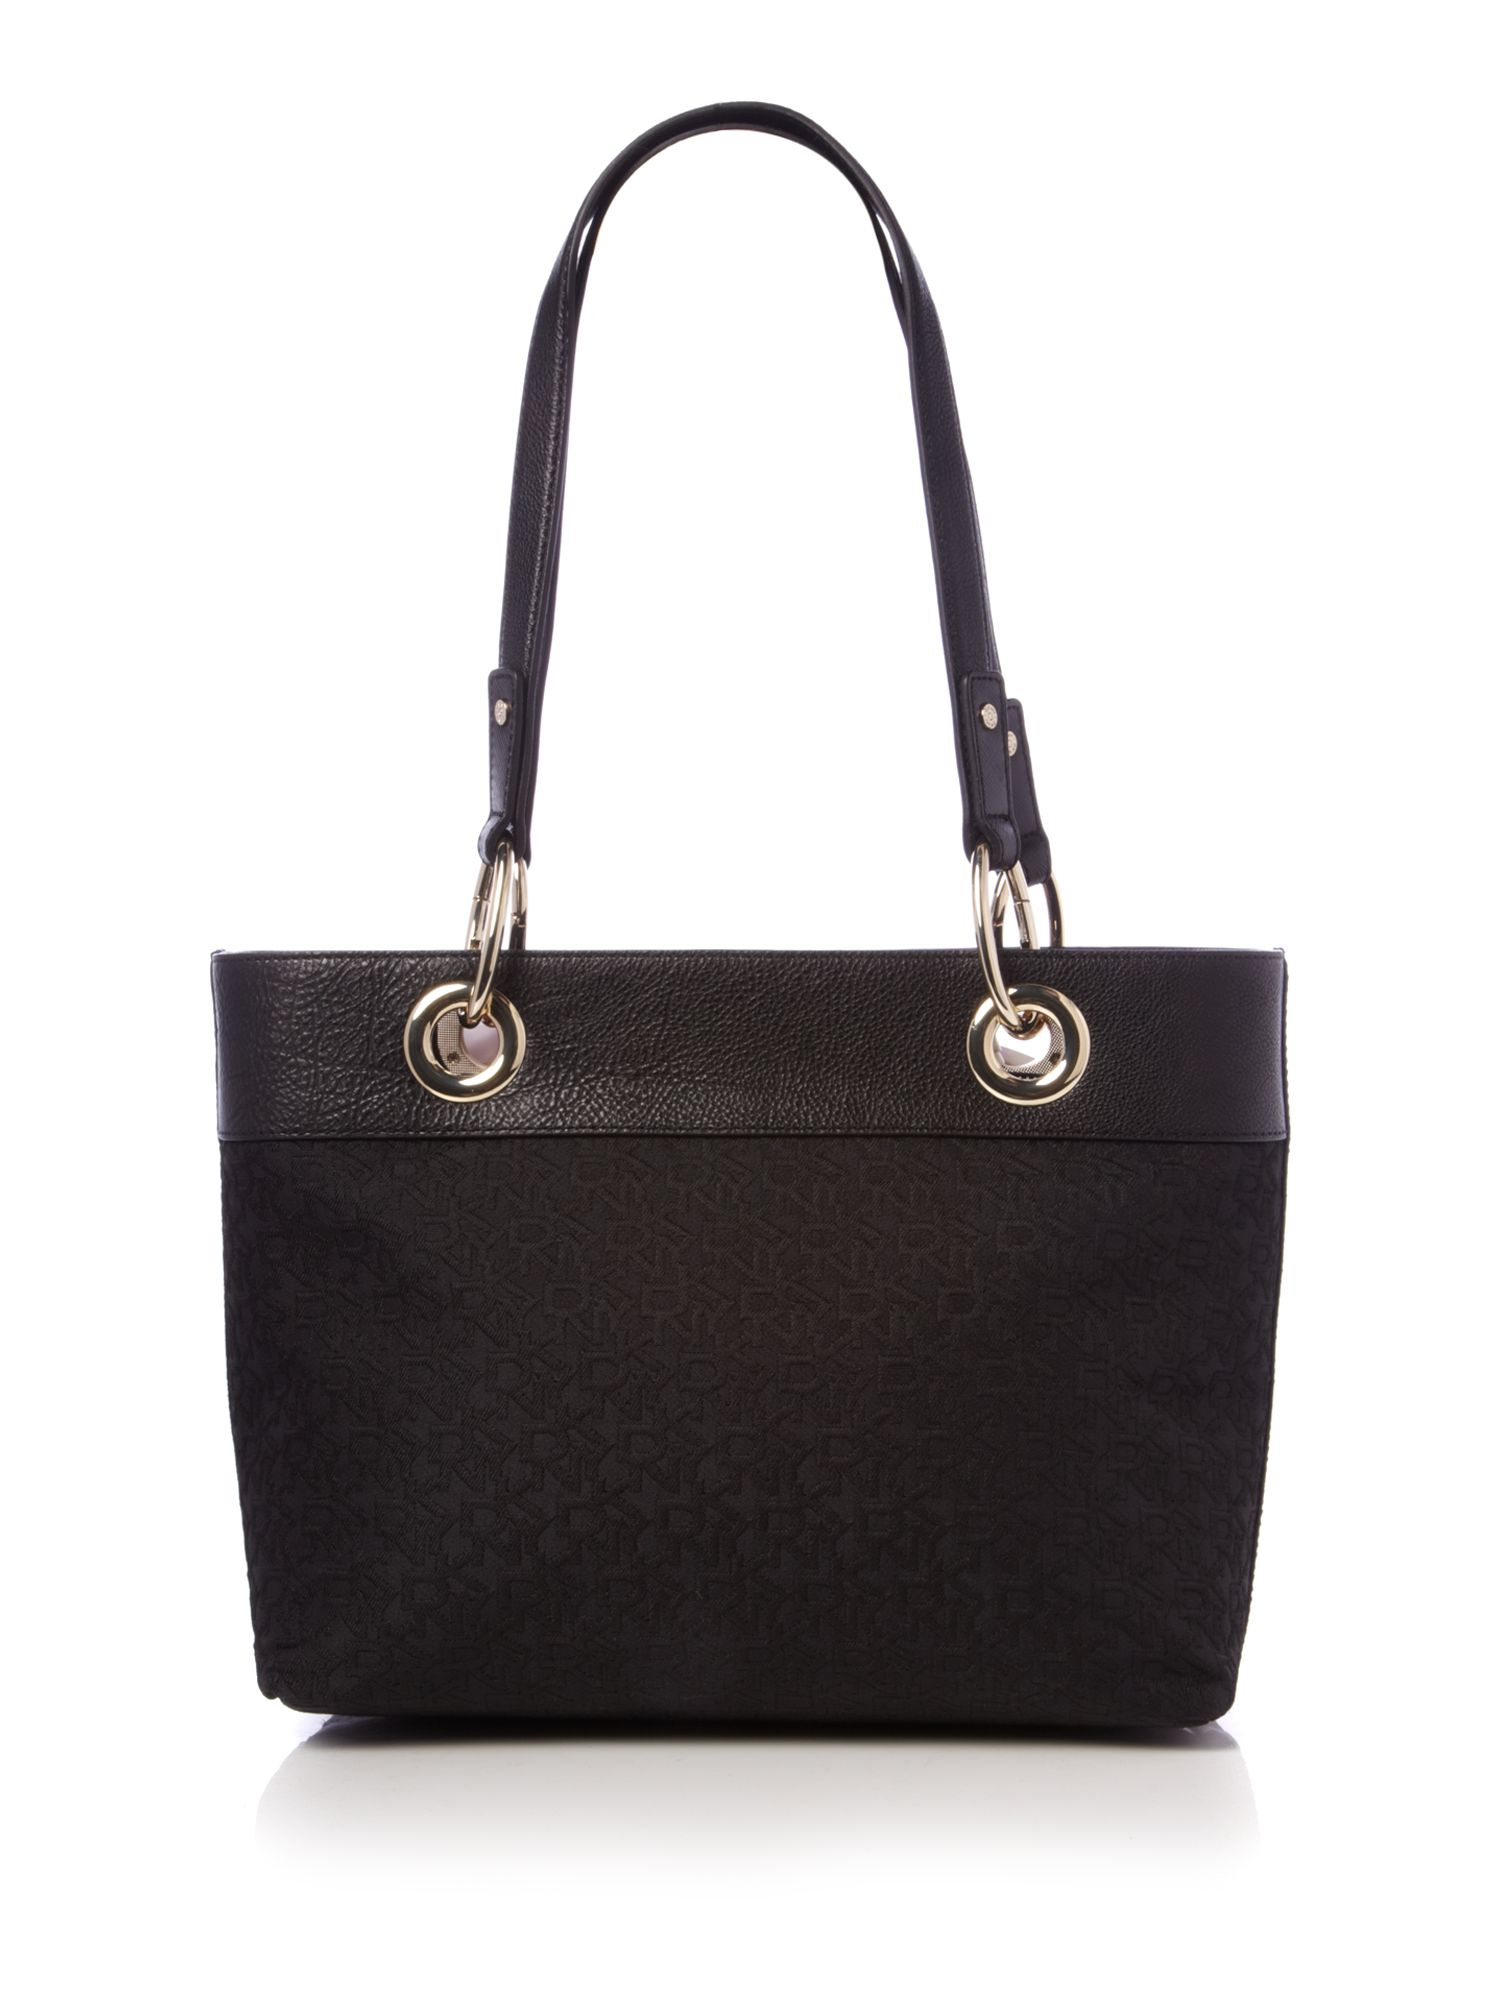 dkny tc scarf tote bag in black lyst